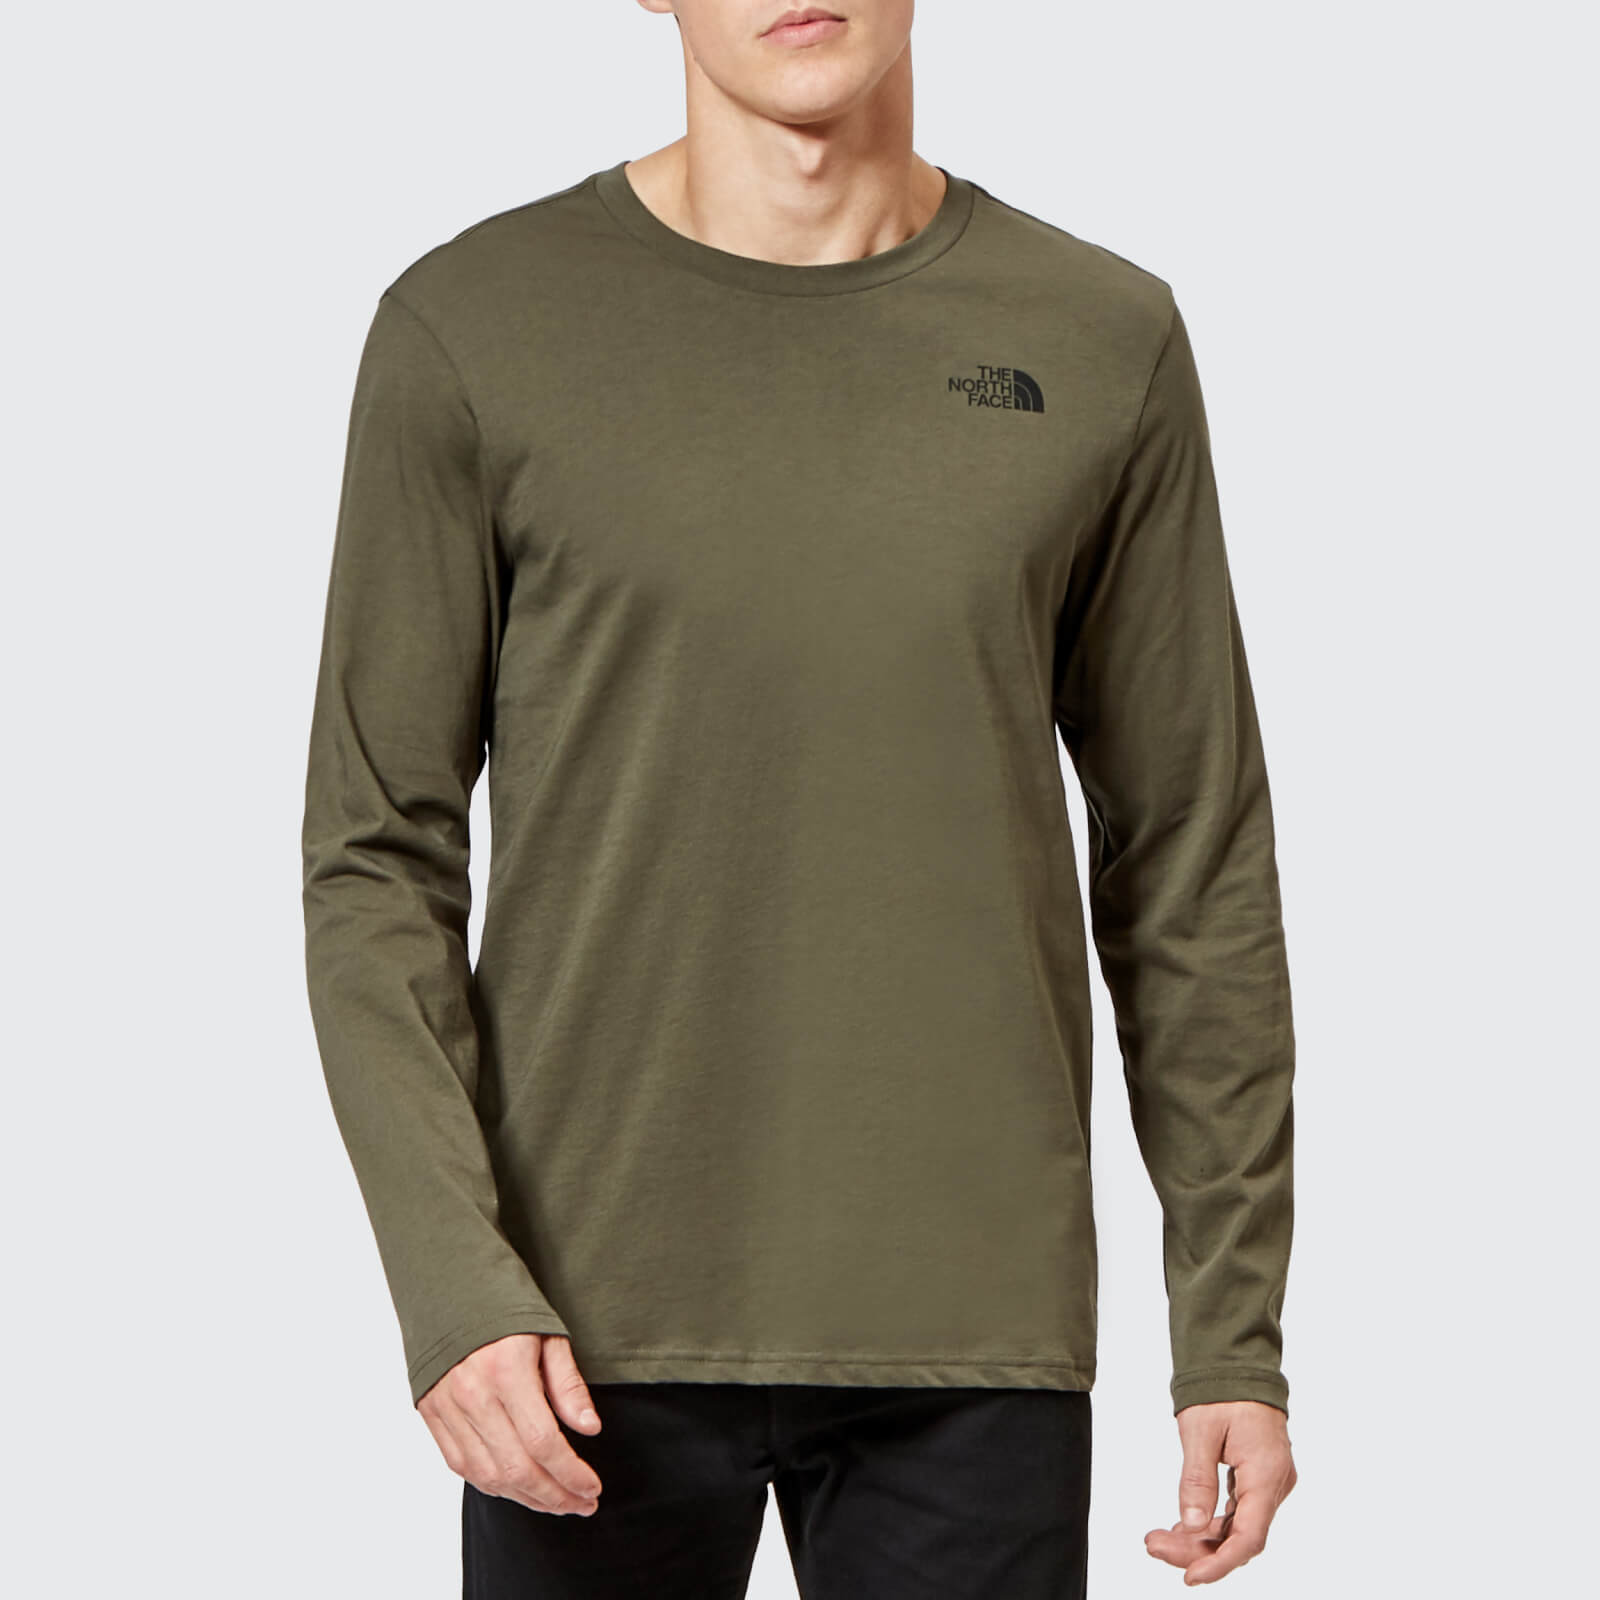 b849a0884 The North Face Men's Long Sleeve Easy T-Shirt - New Taupe Green